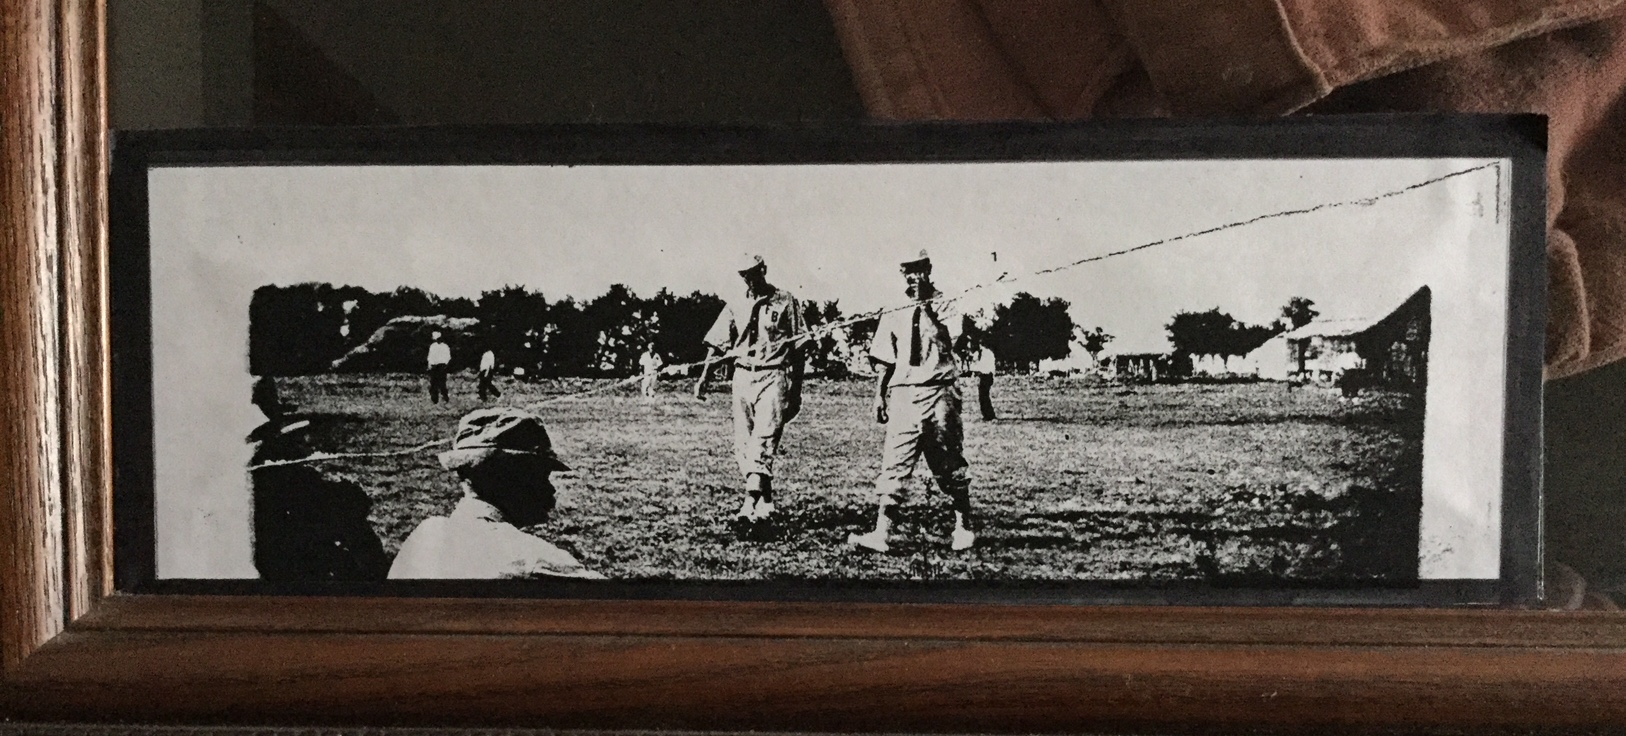 Photo of an early Kansas baseball game. (Photo by Mindy James)